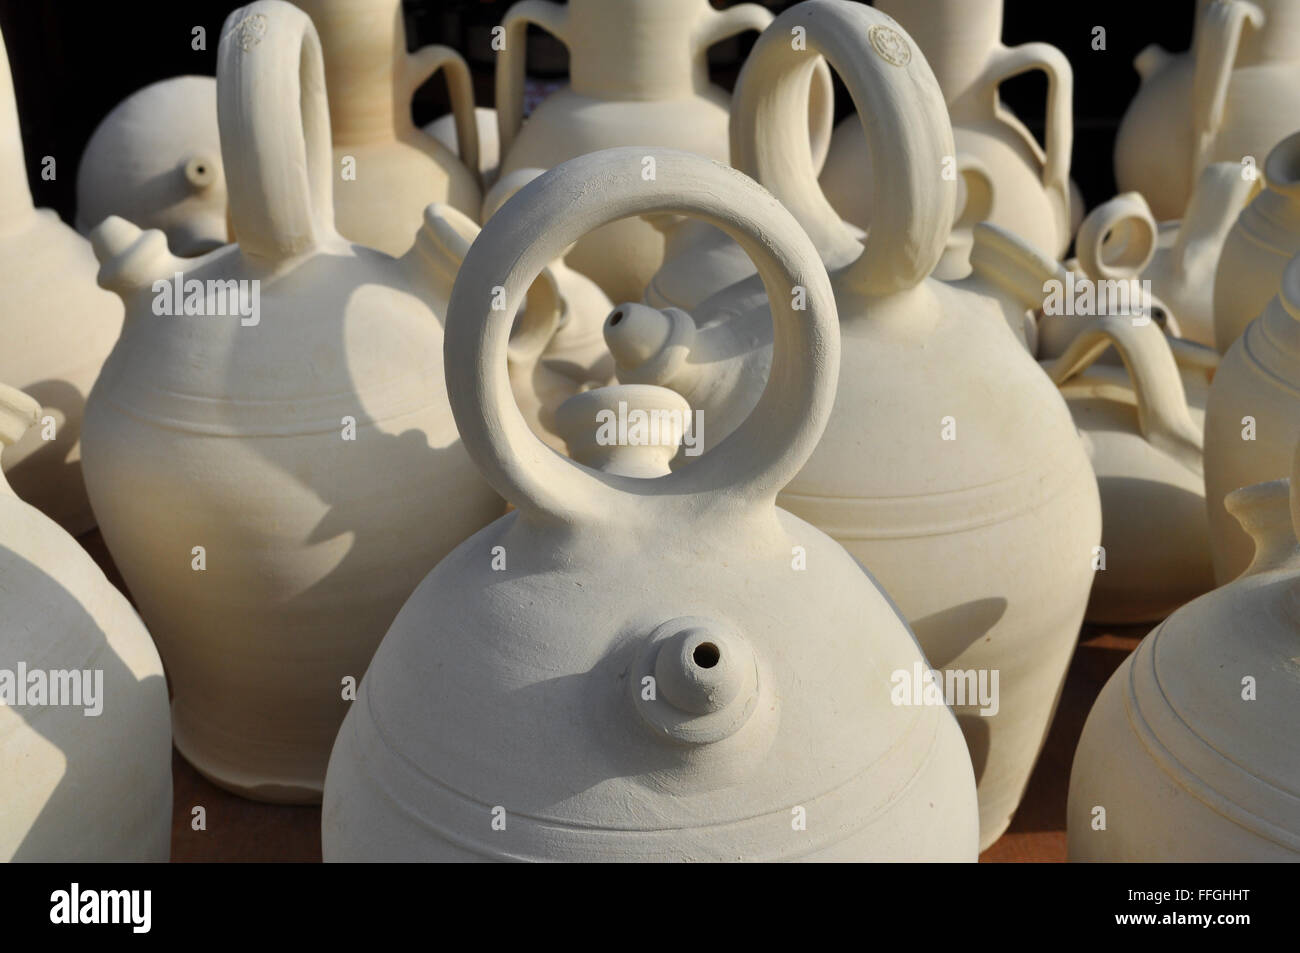 Traditional pottery for sale on a market stall, Spain. Stock Photo